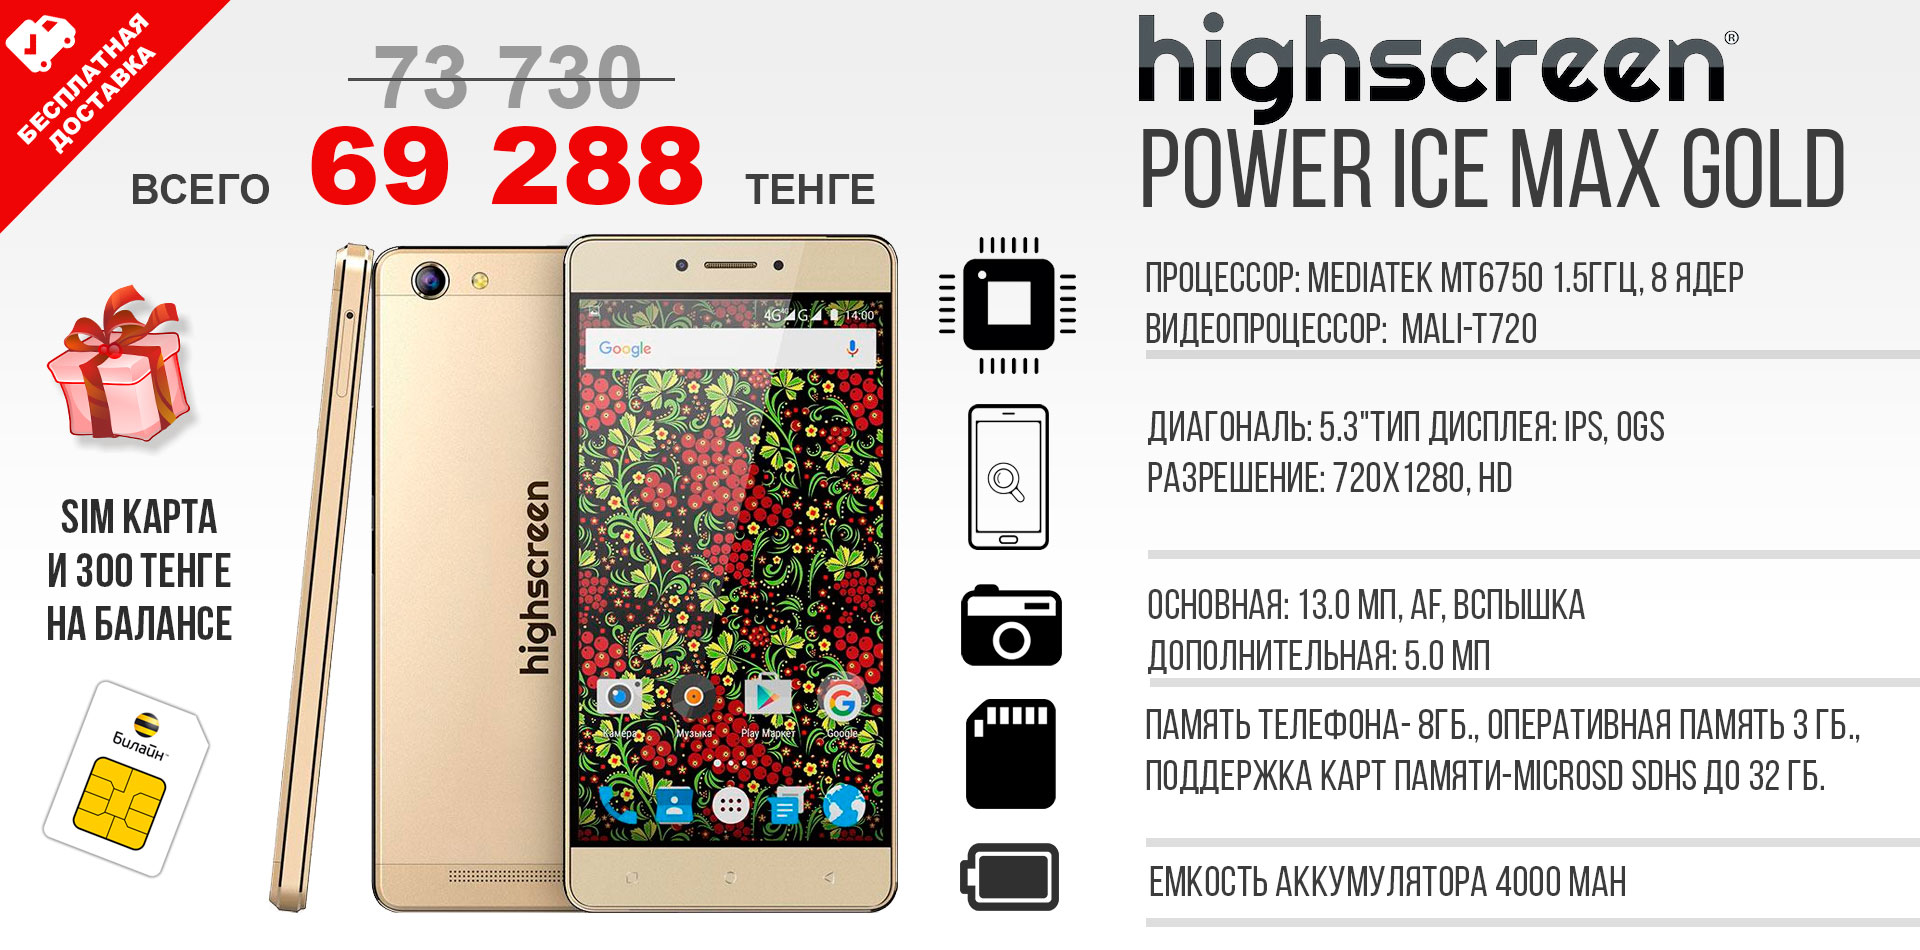 СМАРТФОН HIGHSCREEN POWER ICE MAX GOLD